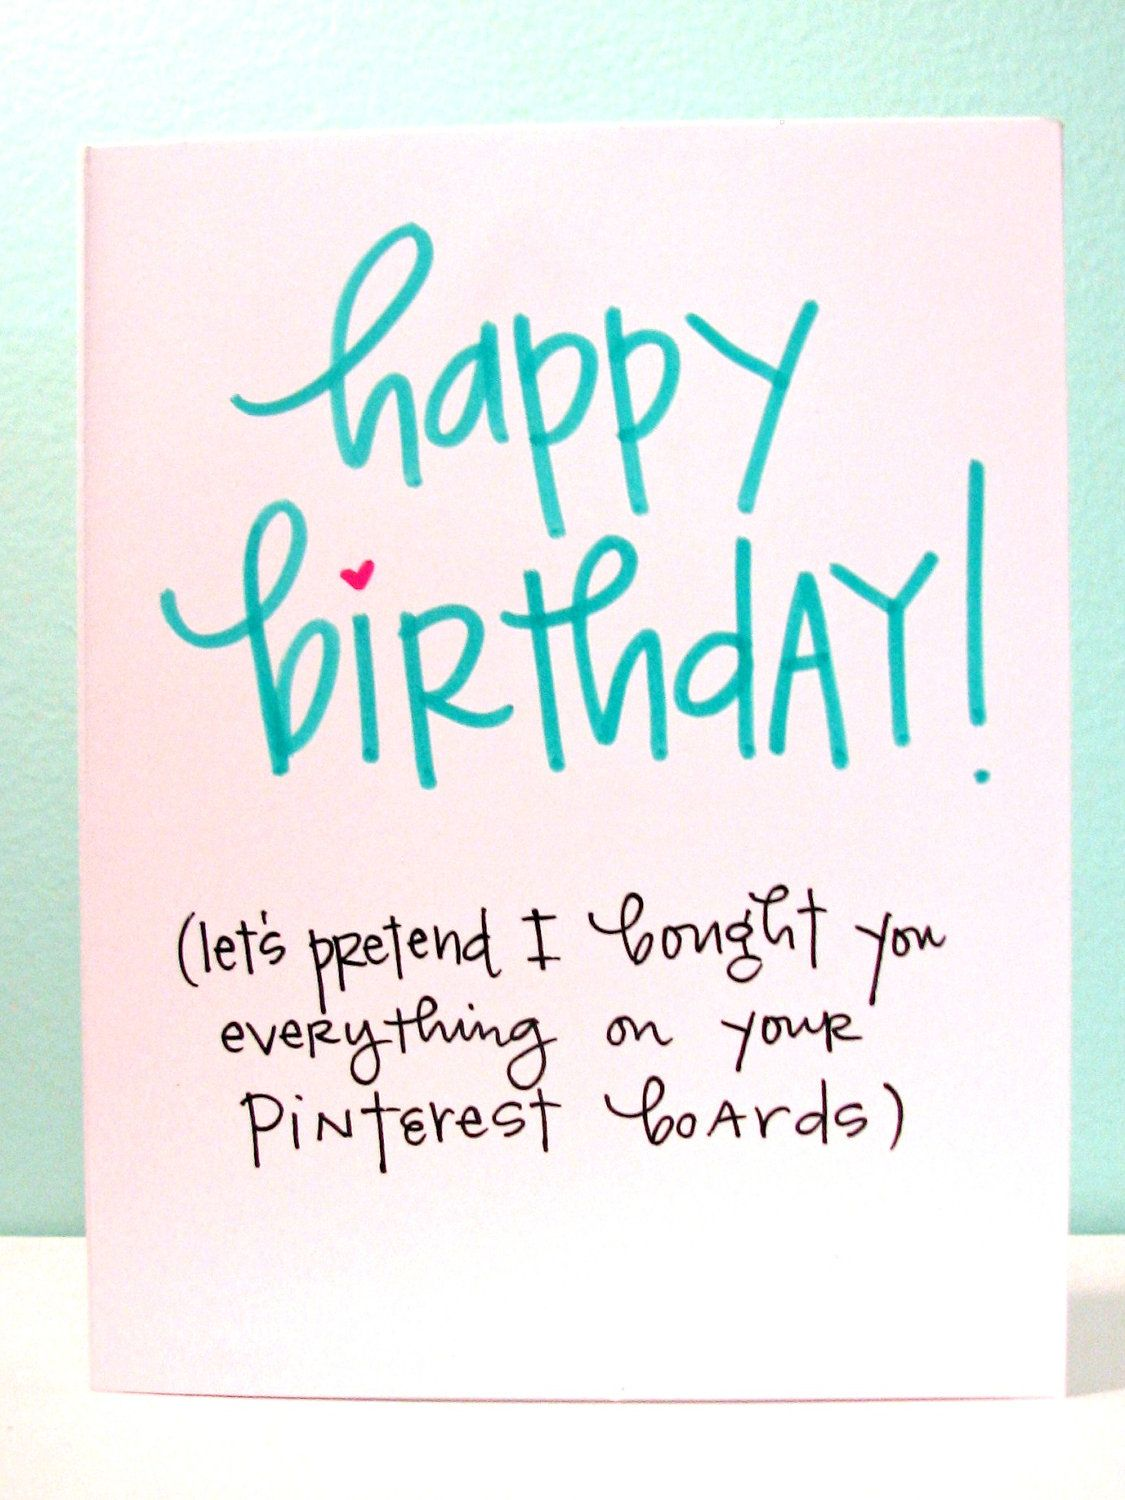 Happy Birthday Pinterest Lover By Lemonswithapea On Etsy With